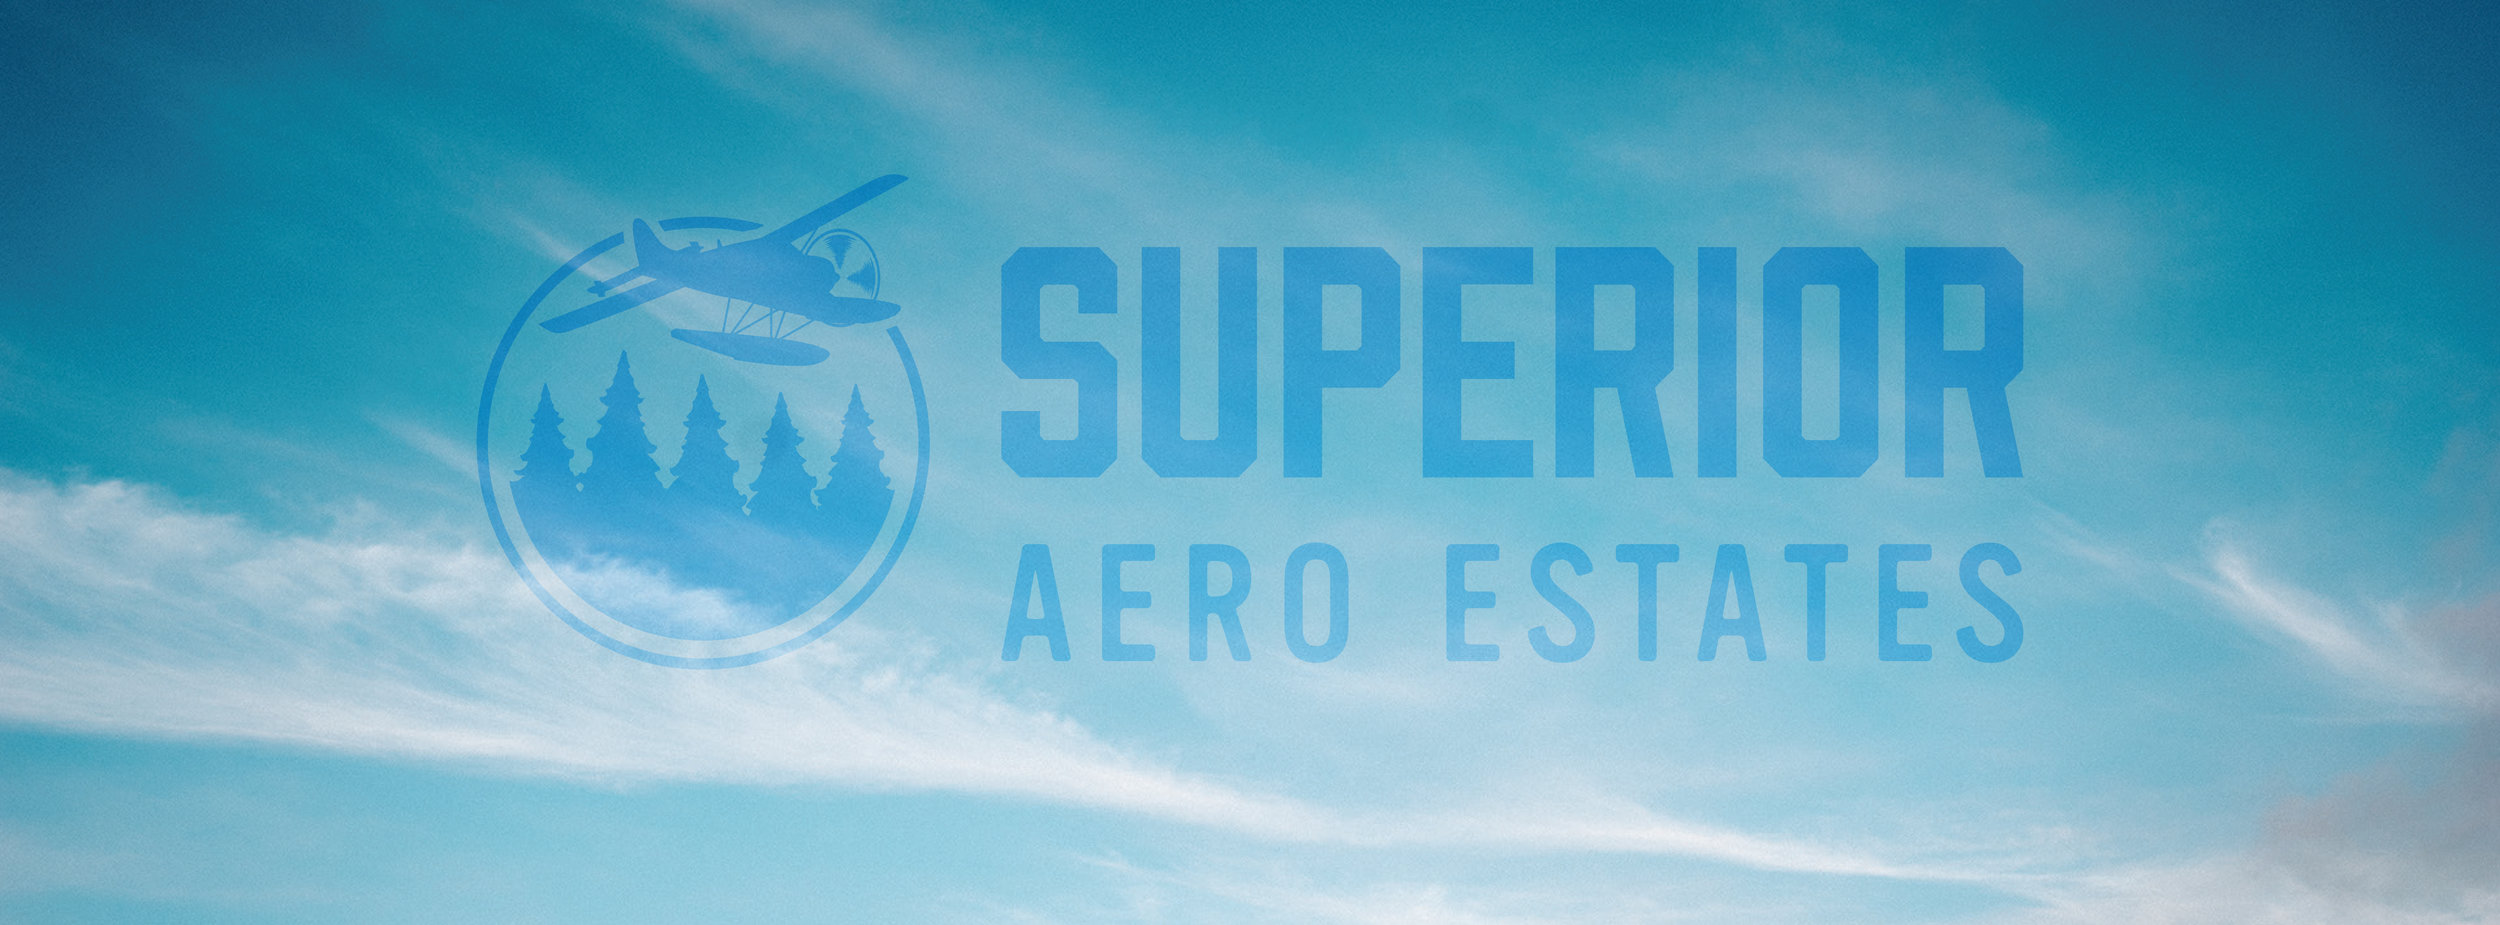 Superior-Aero-Estates-Extra-Graphic-1.jpg